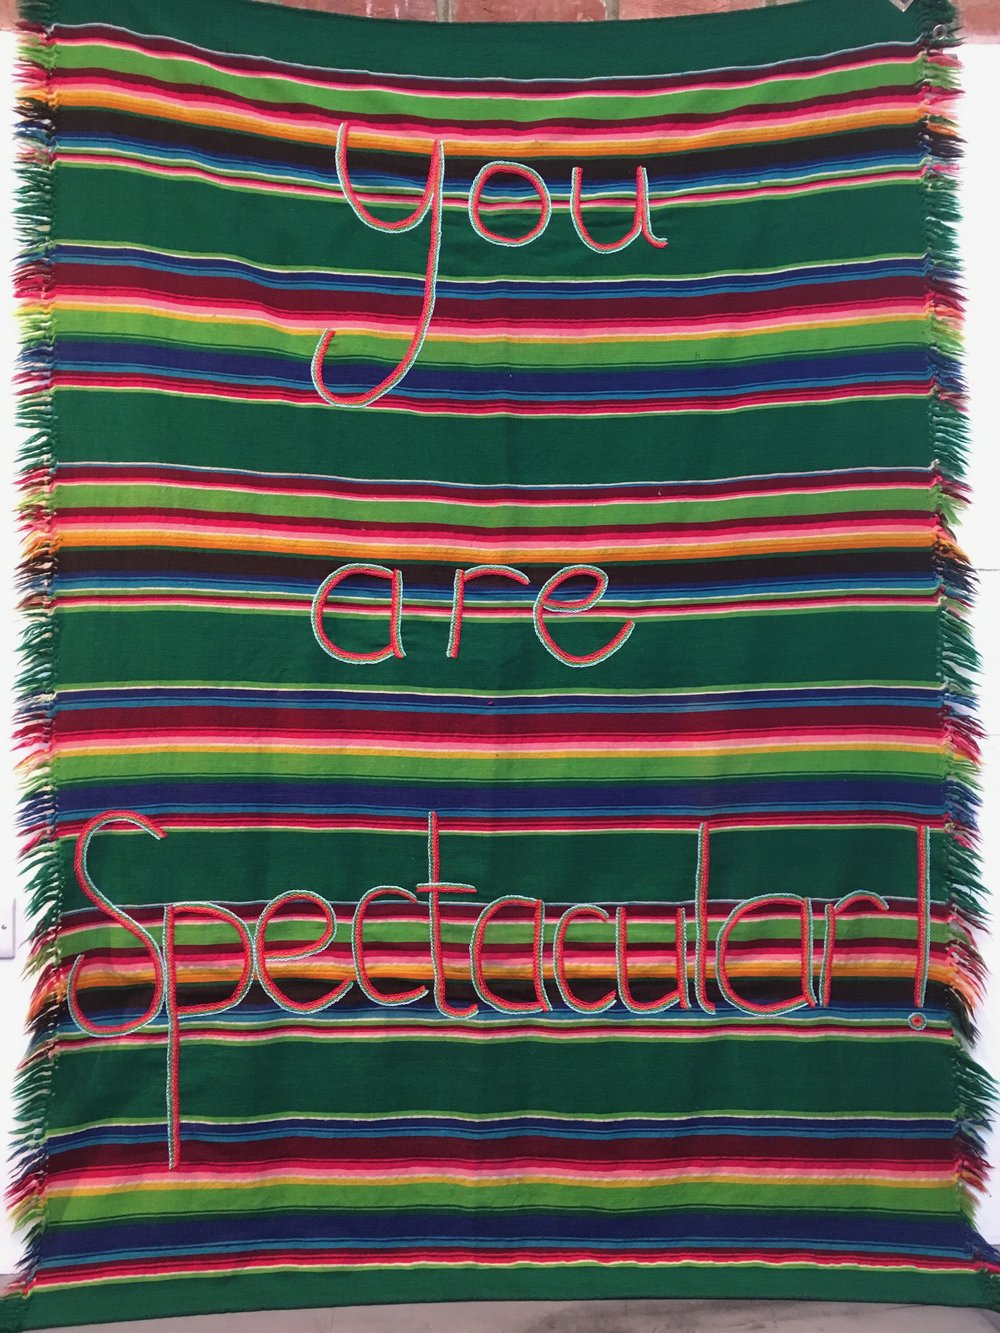 You are Spectacular   Hand sewn blanket with found saying. 2017  Cotton and wool.  1.5m x 2m